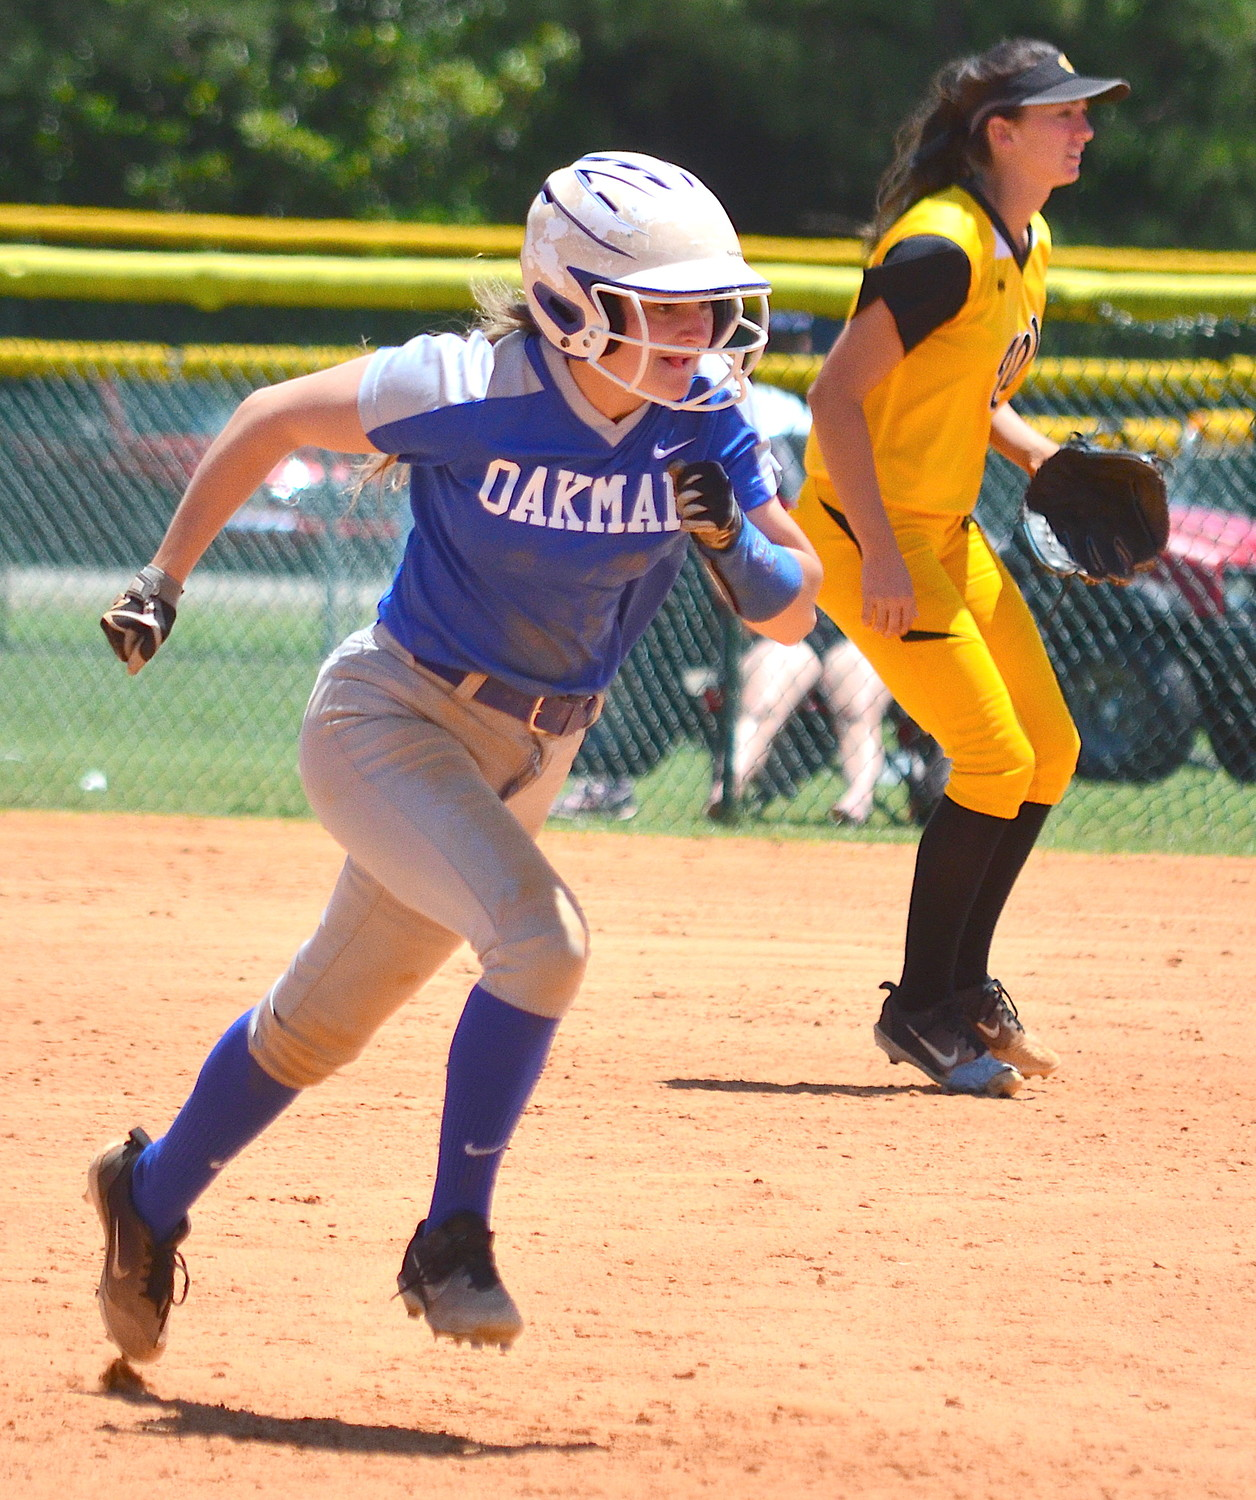 Oakman's AJ Barrentine makes her way to third base during Wednesday's loss to Wicksburg at the state tournament.